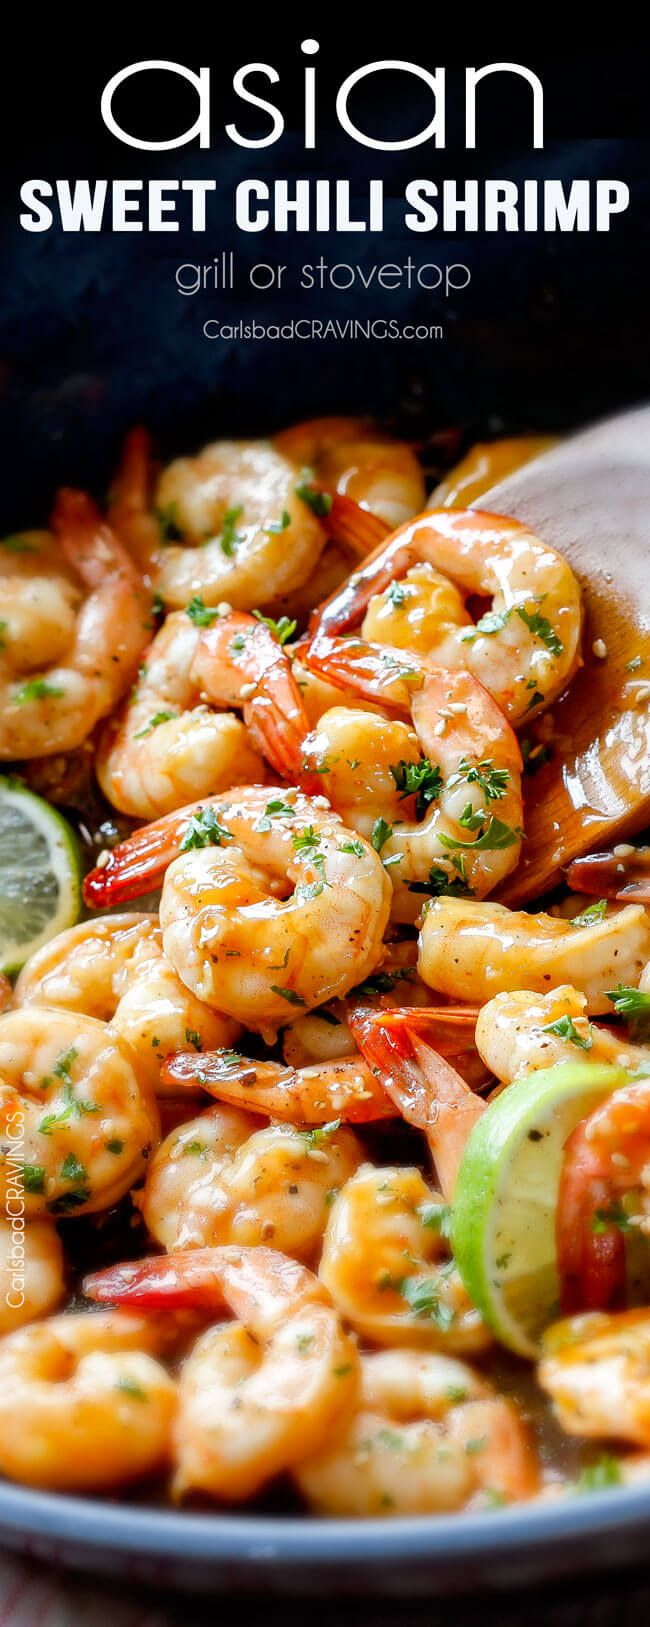 quick and easy Asian Sweet Chili Shrimp (grill or stovetop) - this is by far my favorite shrimp recipe! The tangy sweet heat sauce is incredible and its…